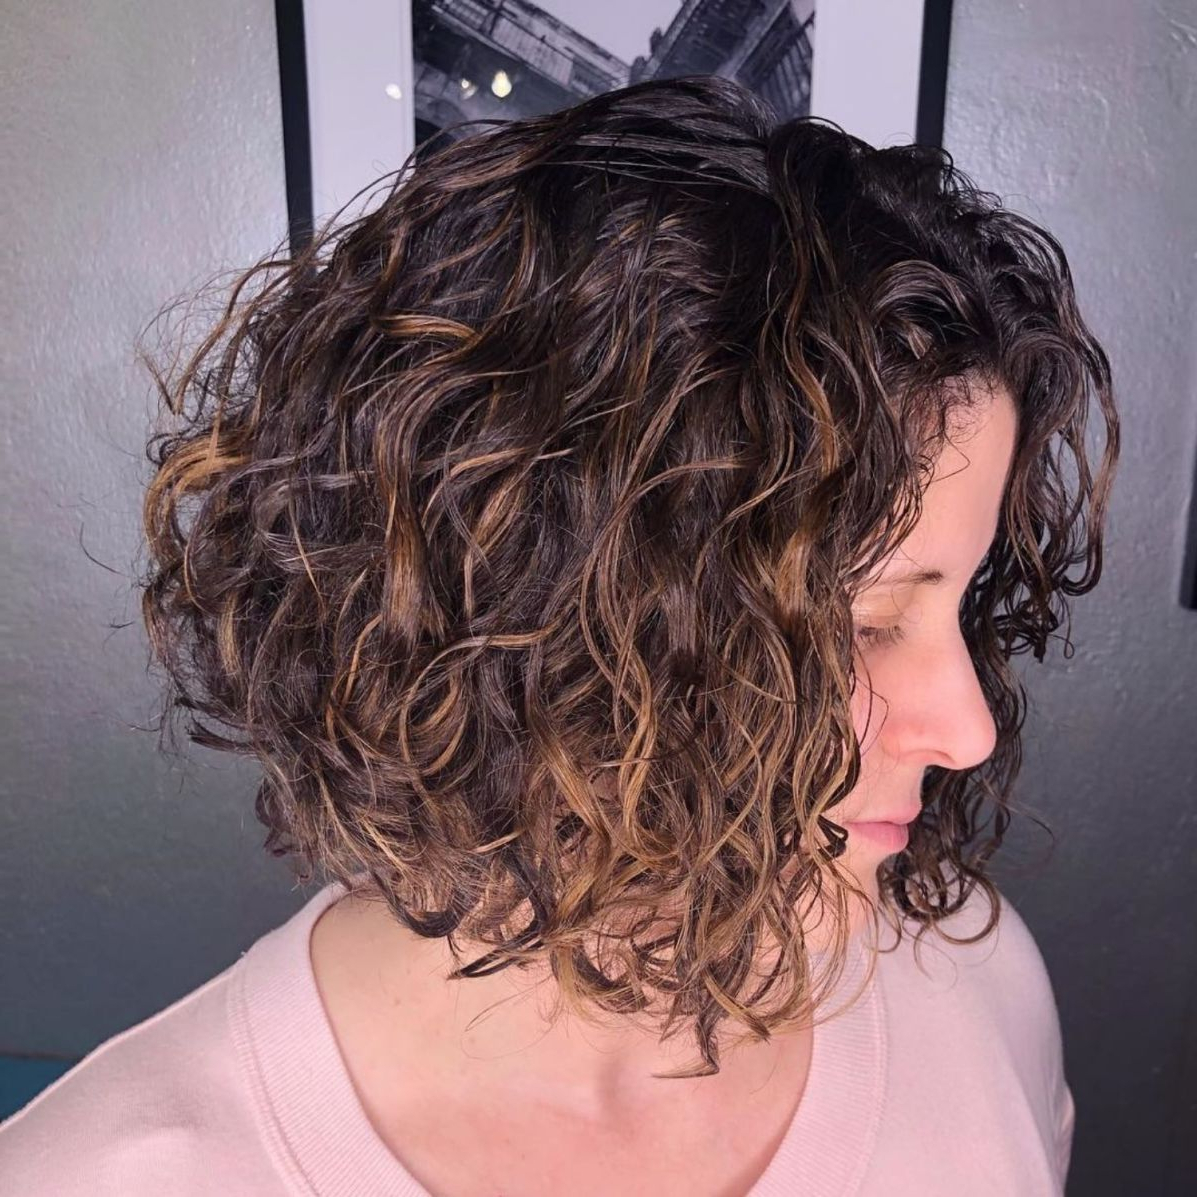 55 Different Versions Of Curly Bob Hairstyle | Me | Pinterest Throughout Short Curly Caramel Brown Bob Hairstyles (View 15 of 20)